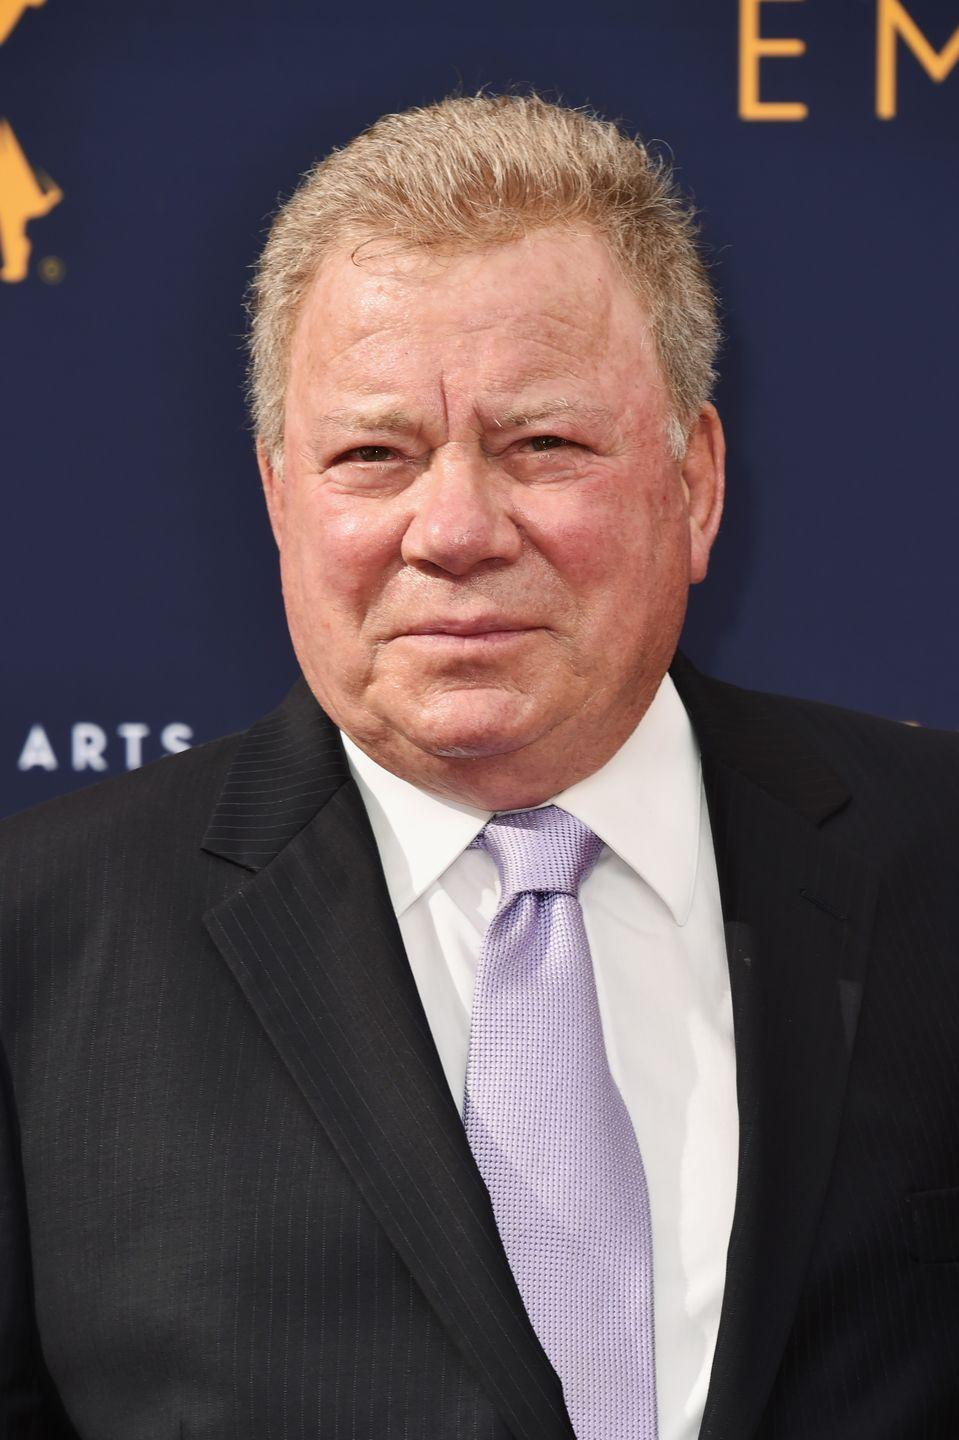 <p>Shatner was born in 1931 ... just let that sink in</p>